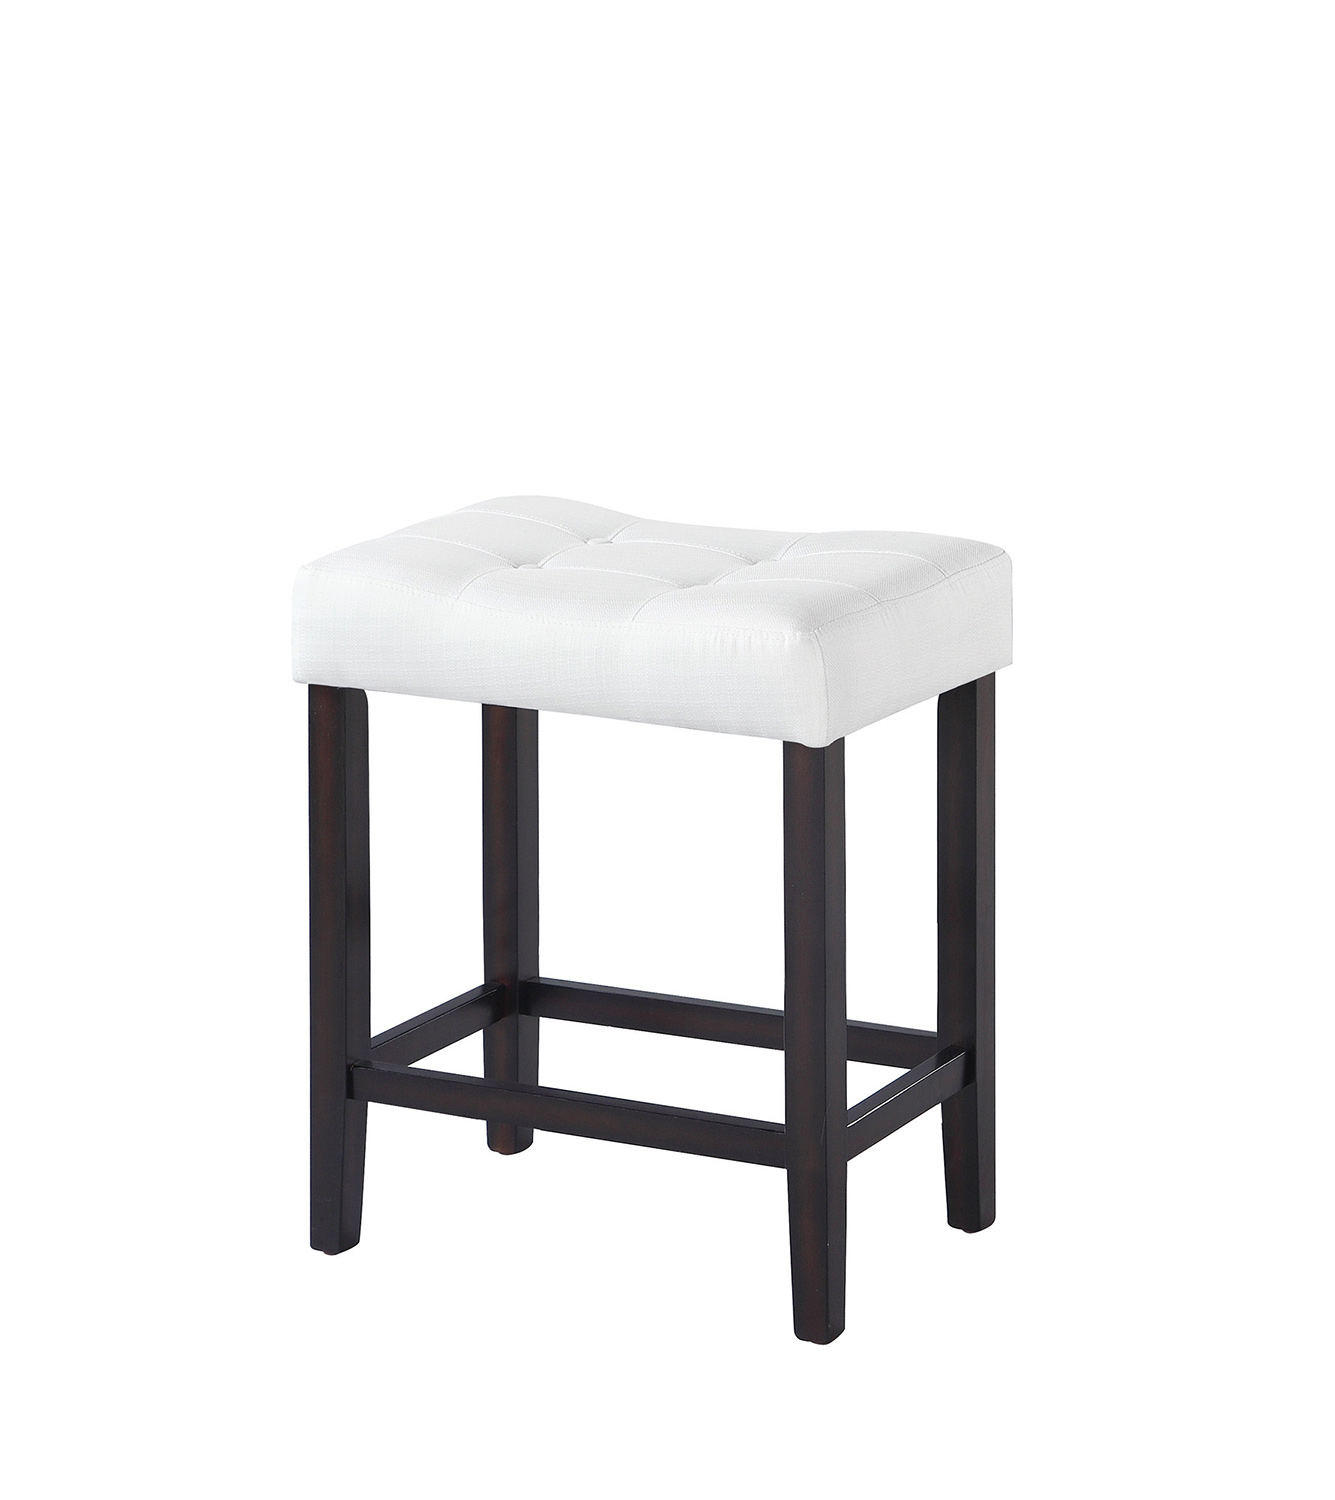 Coaster 182018 Counter Height Stool - White Fabric